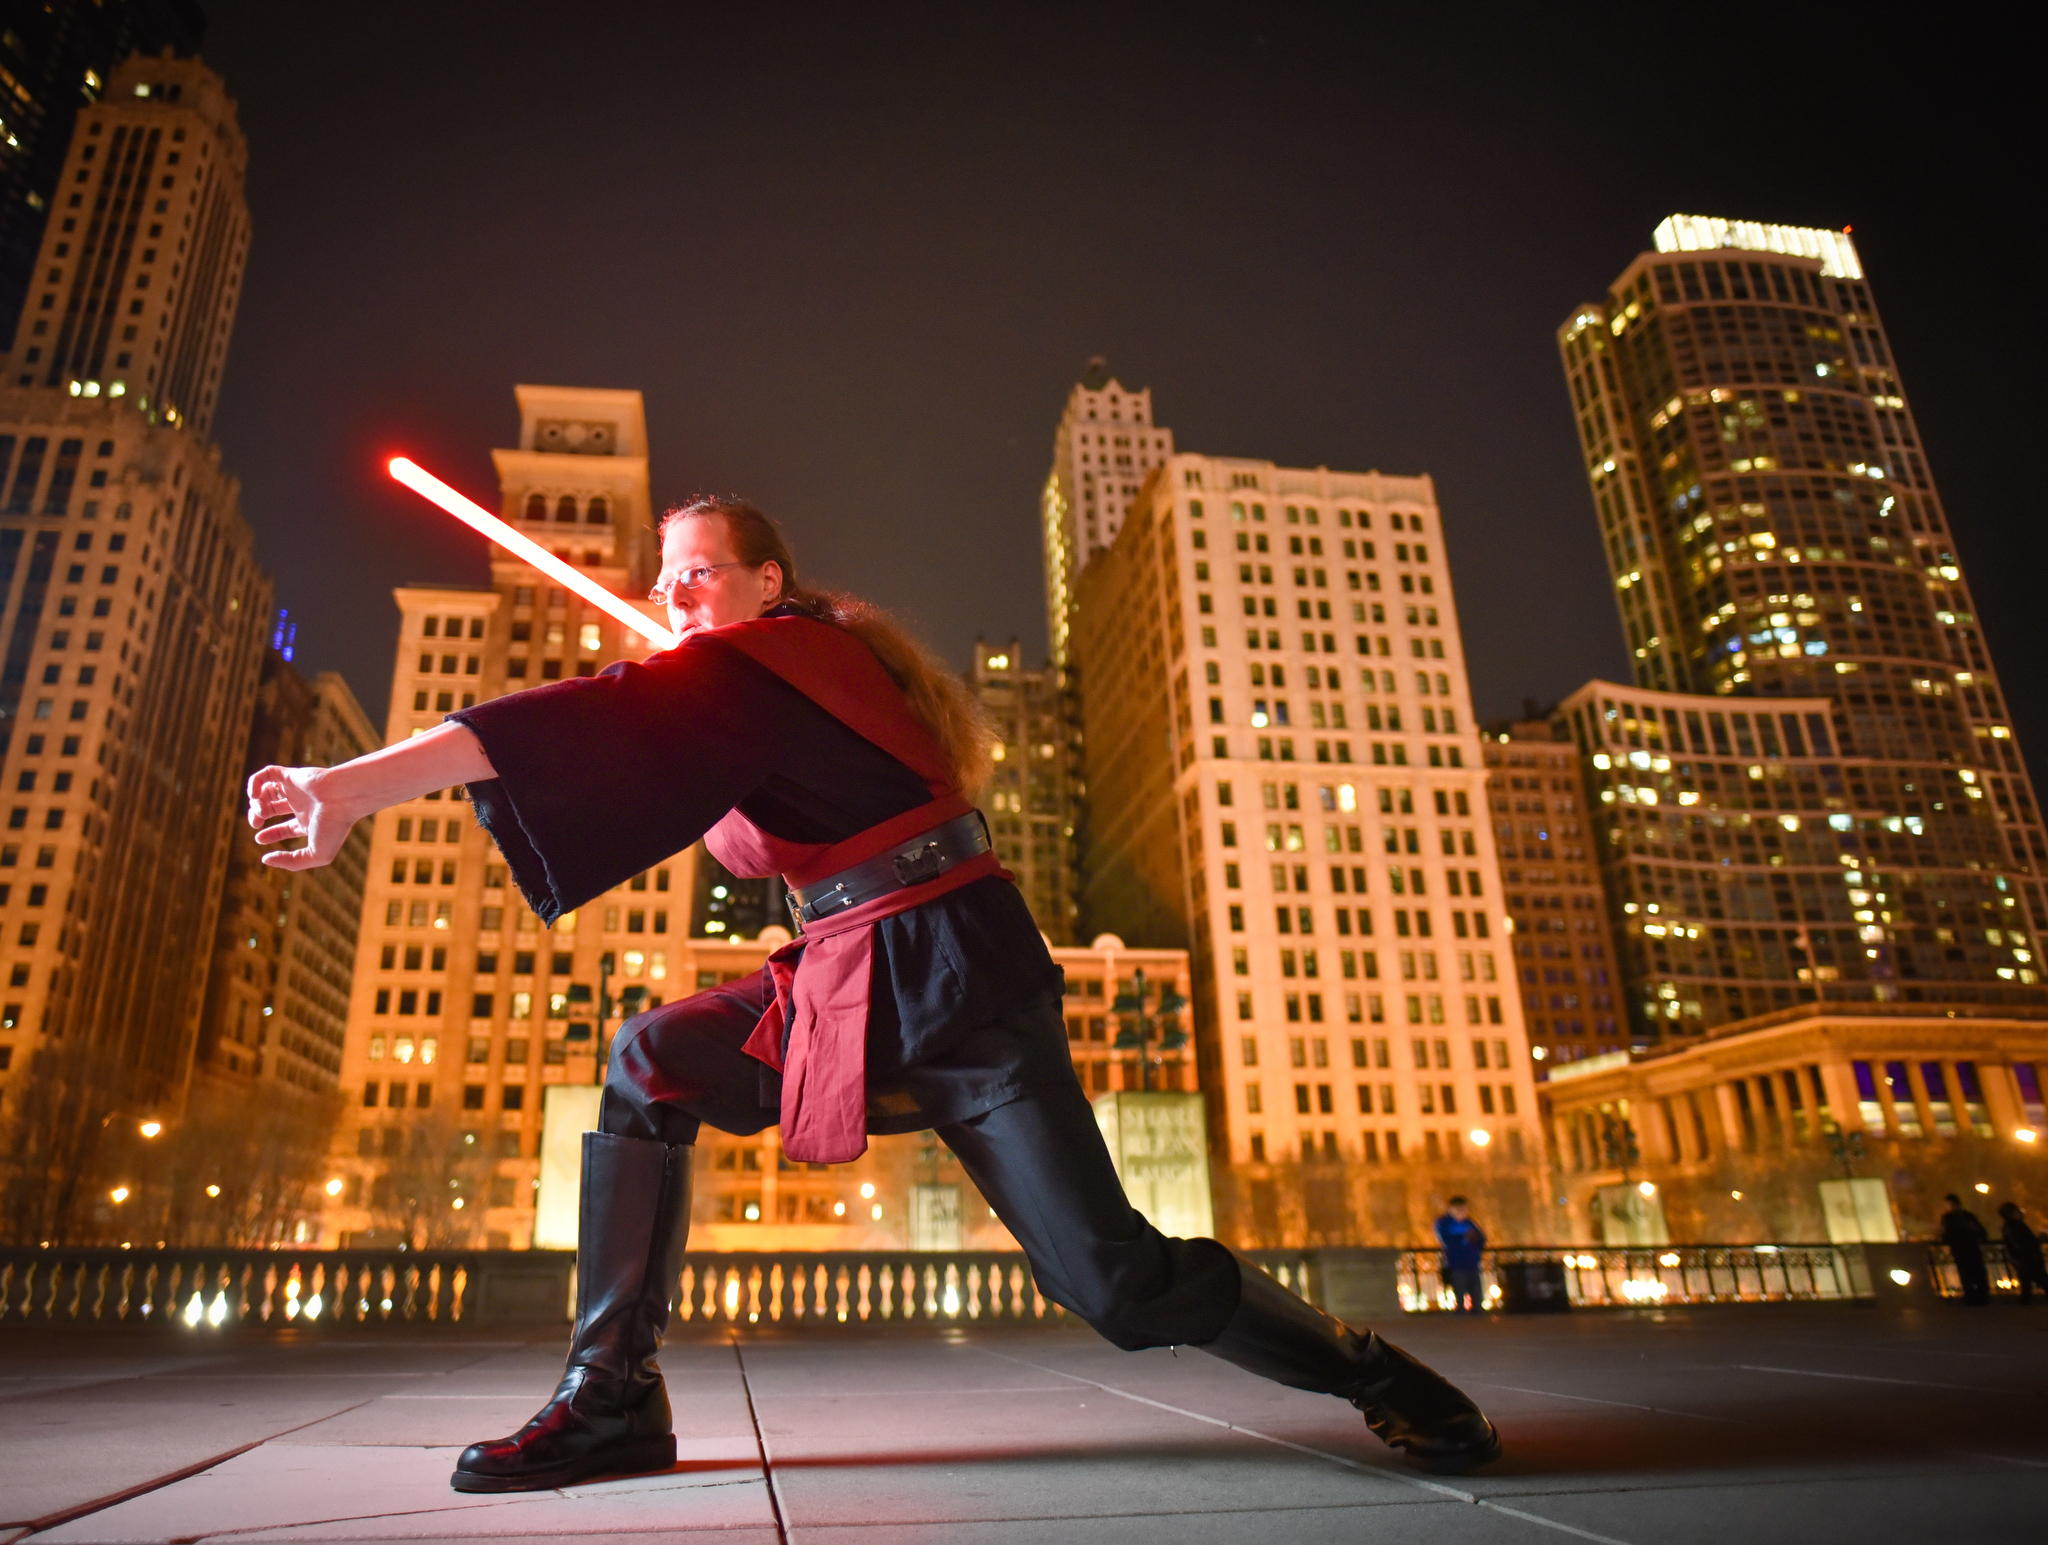 2019.04.14 - Star Wars Celebration Chicago 288863.JPG